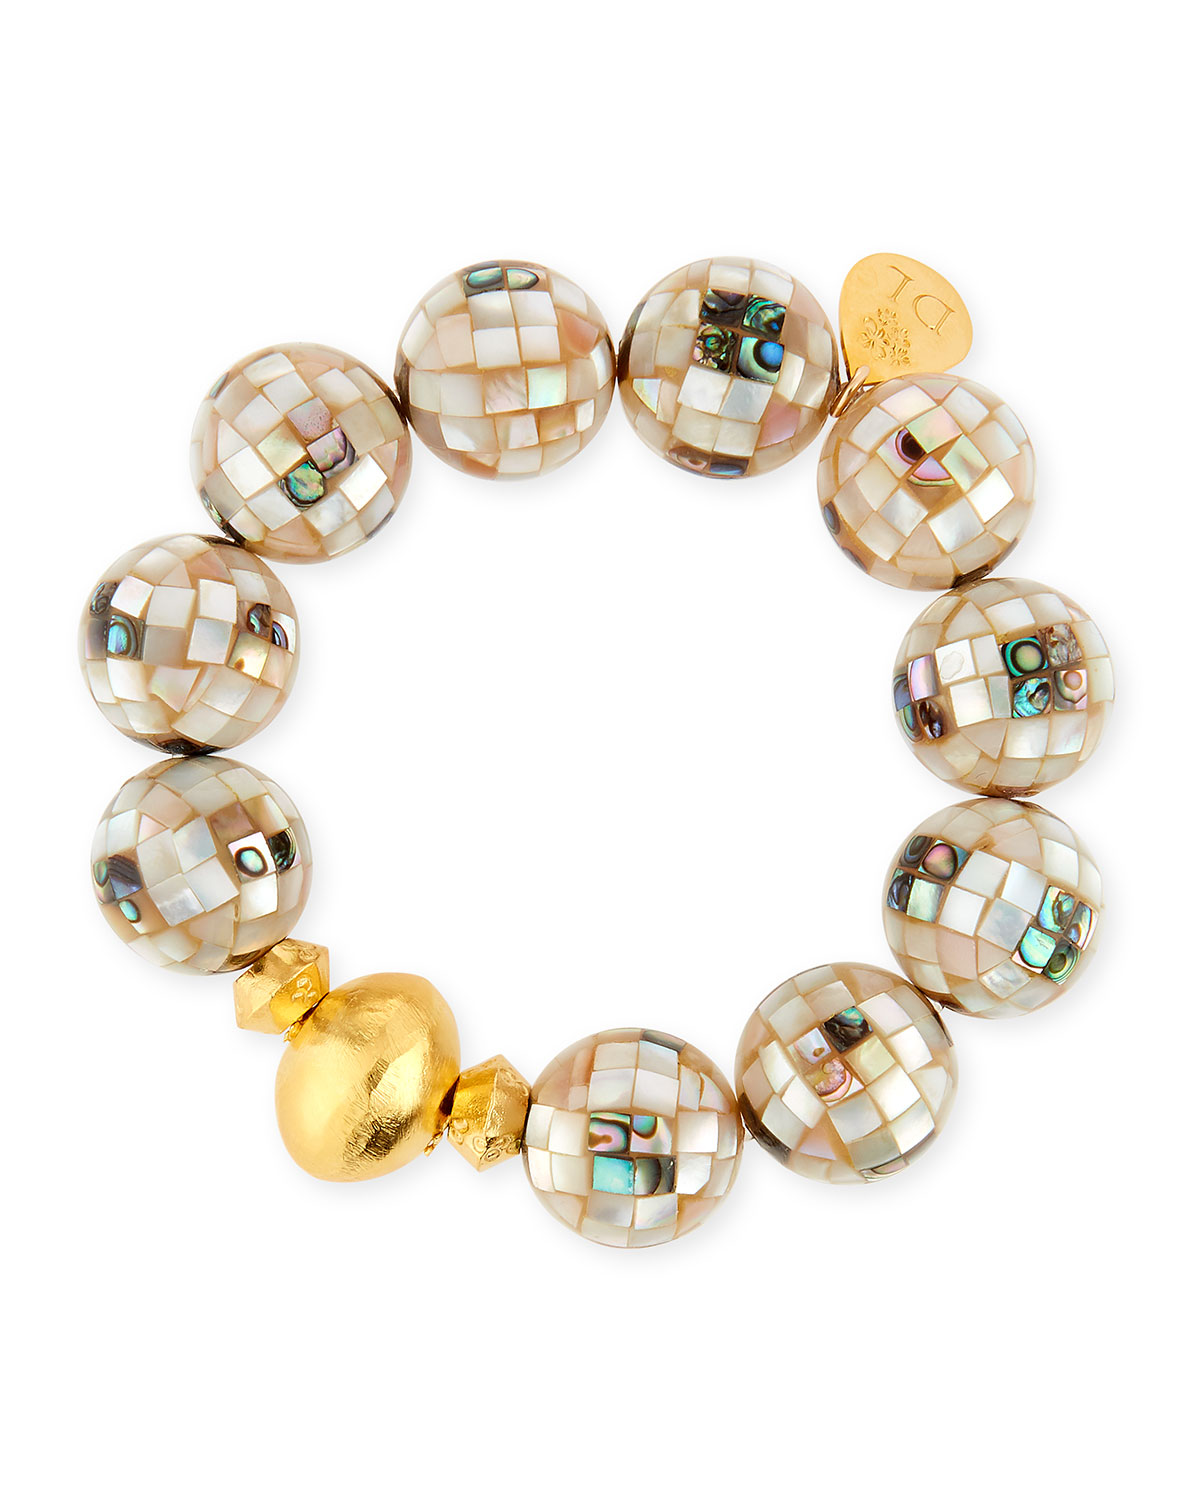 Devon Leigh 18k Gold-Plated Pearlescent Bead Bracelet